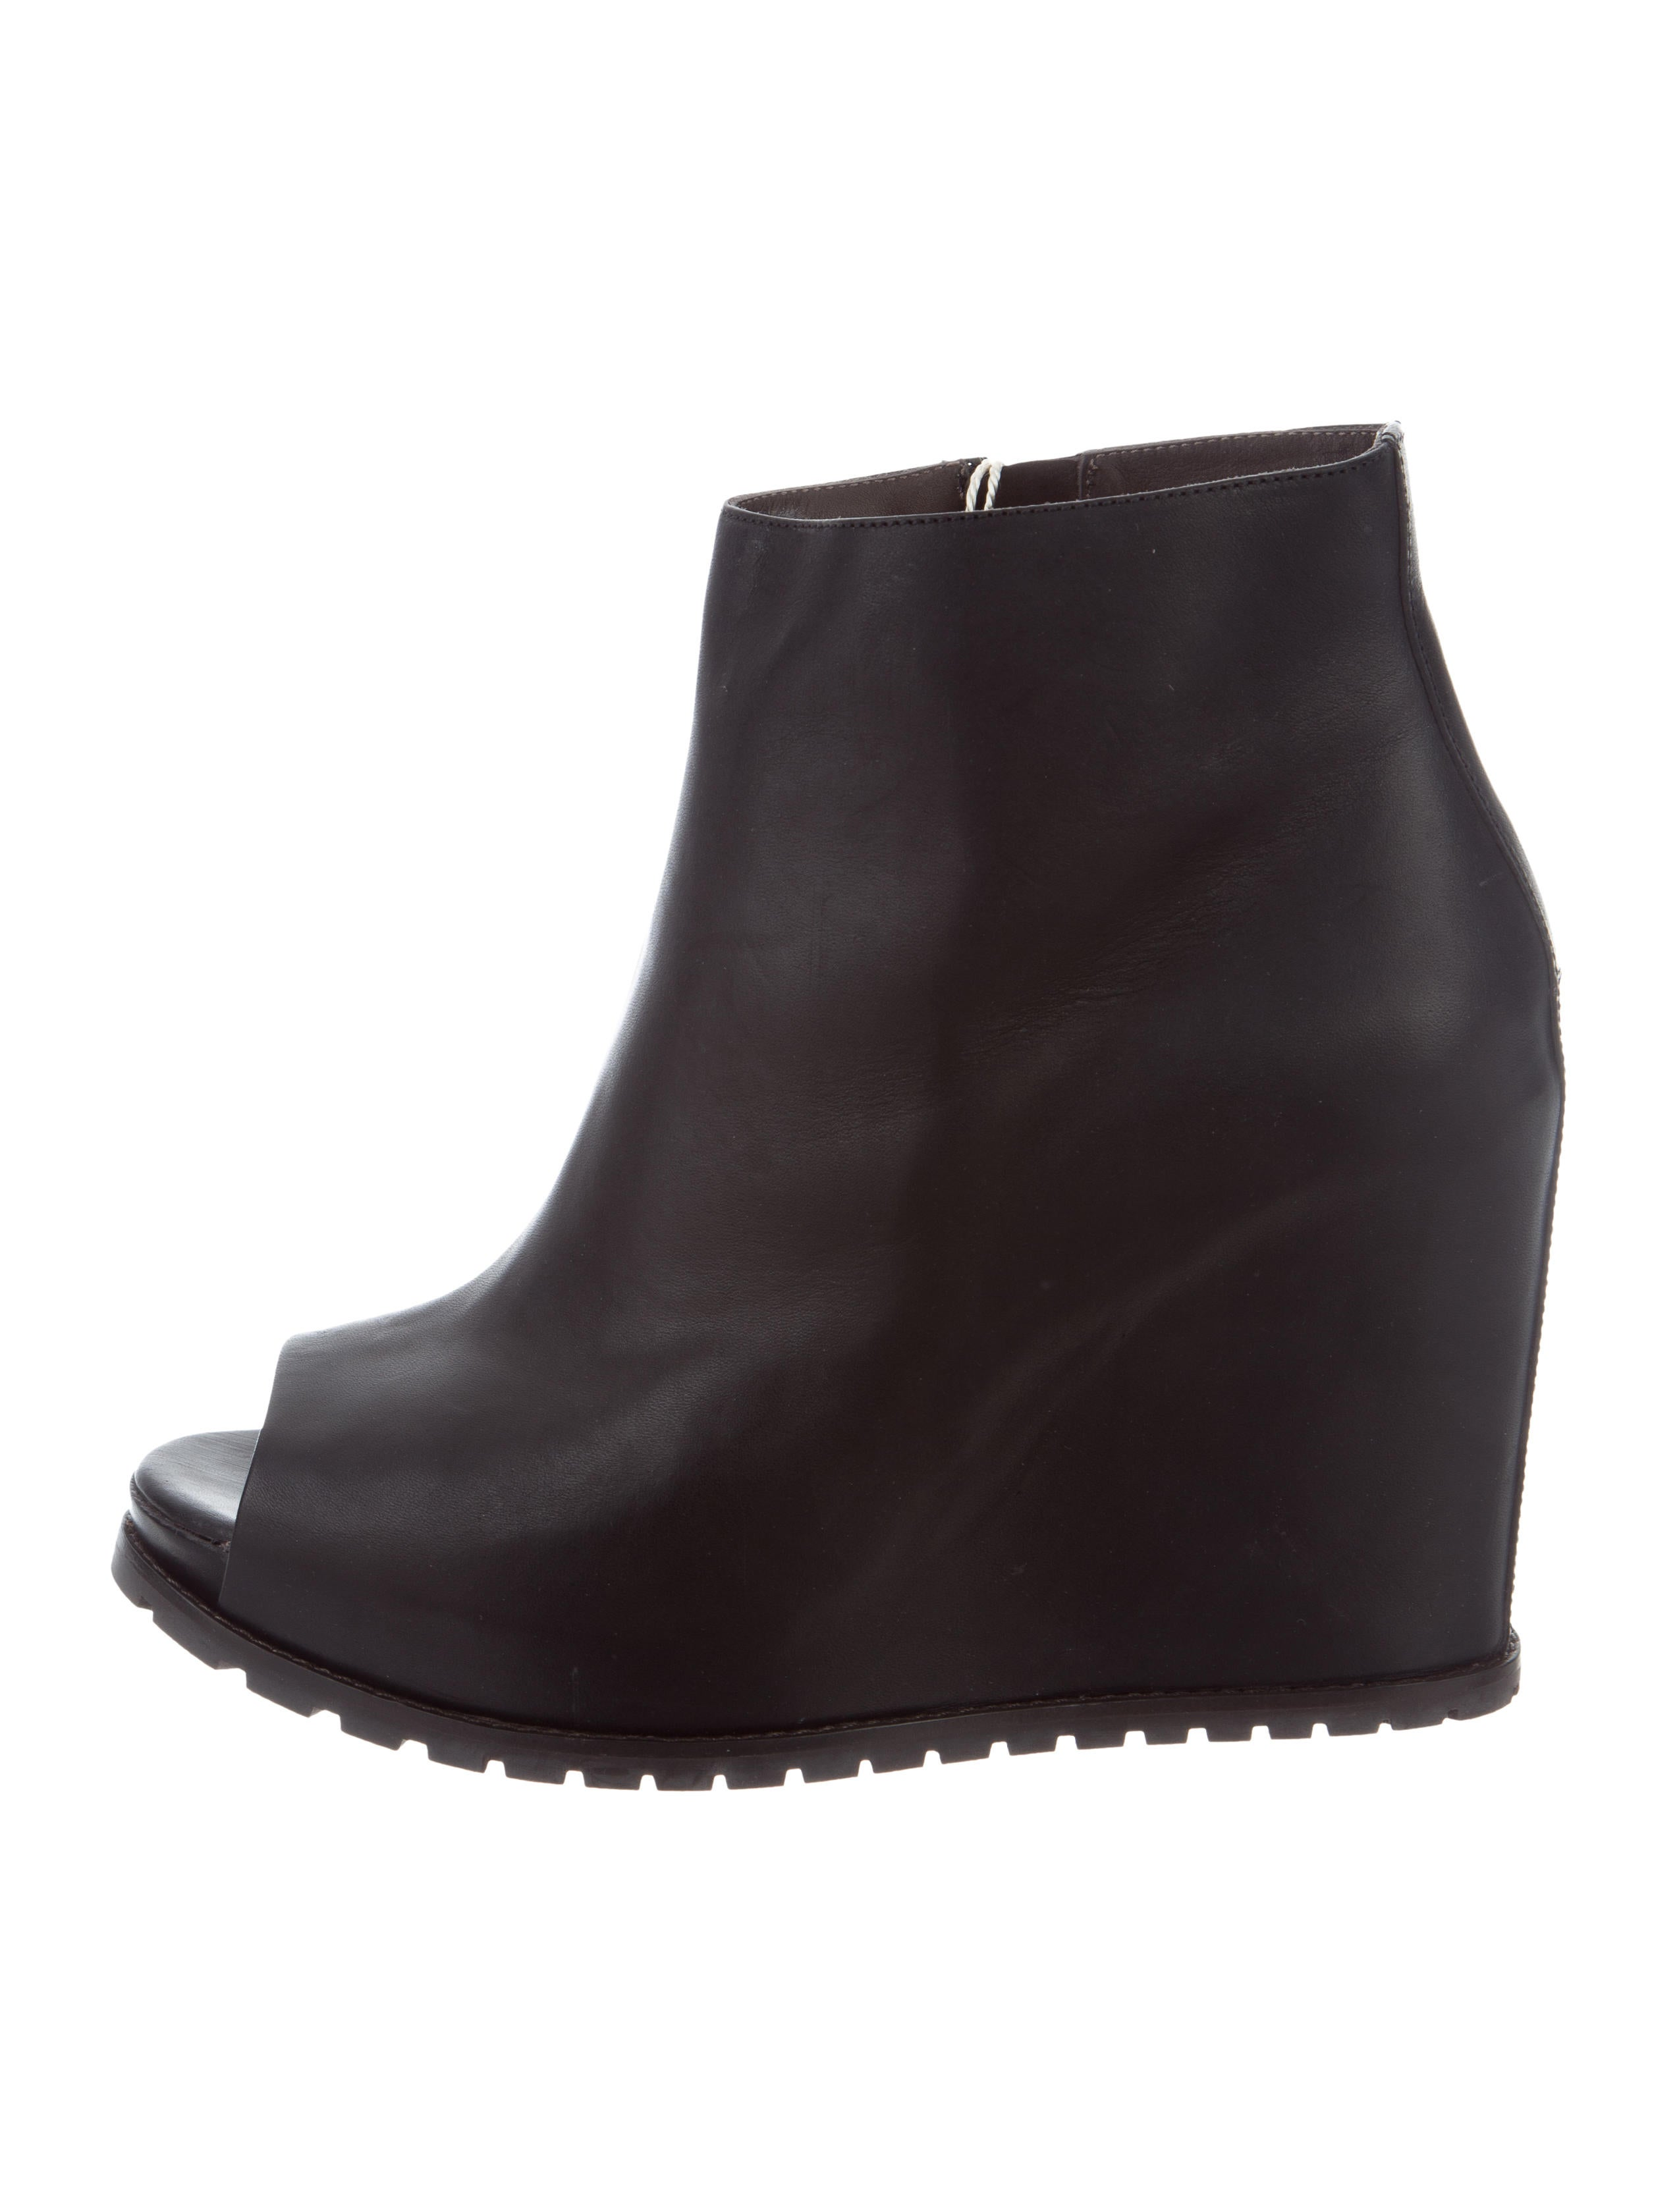 Brunello Cucinelli Peep-Toe Wedge Ankle Boots reliable cheap price uwNAXOpSMr